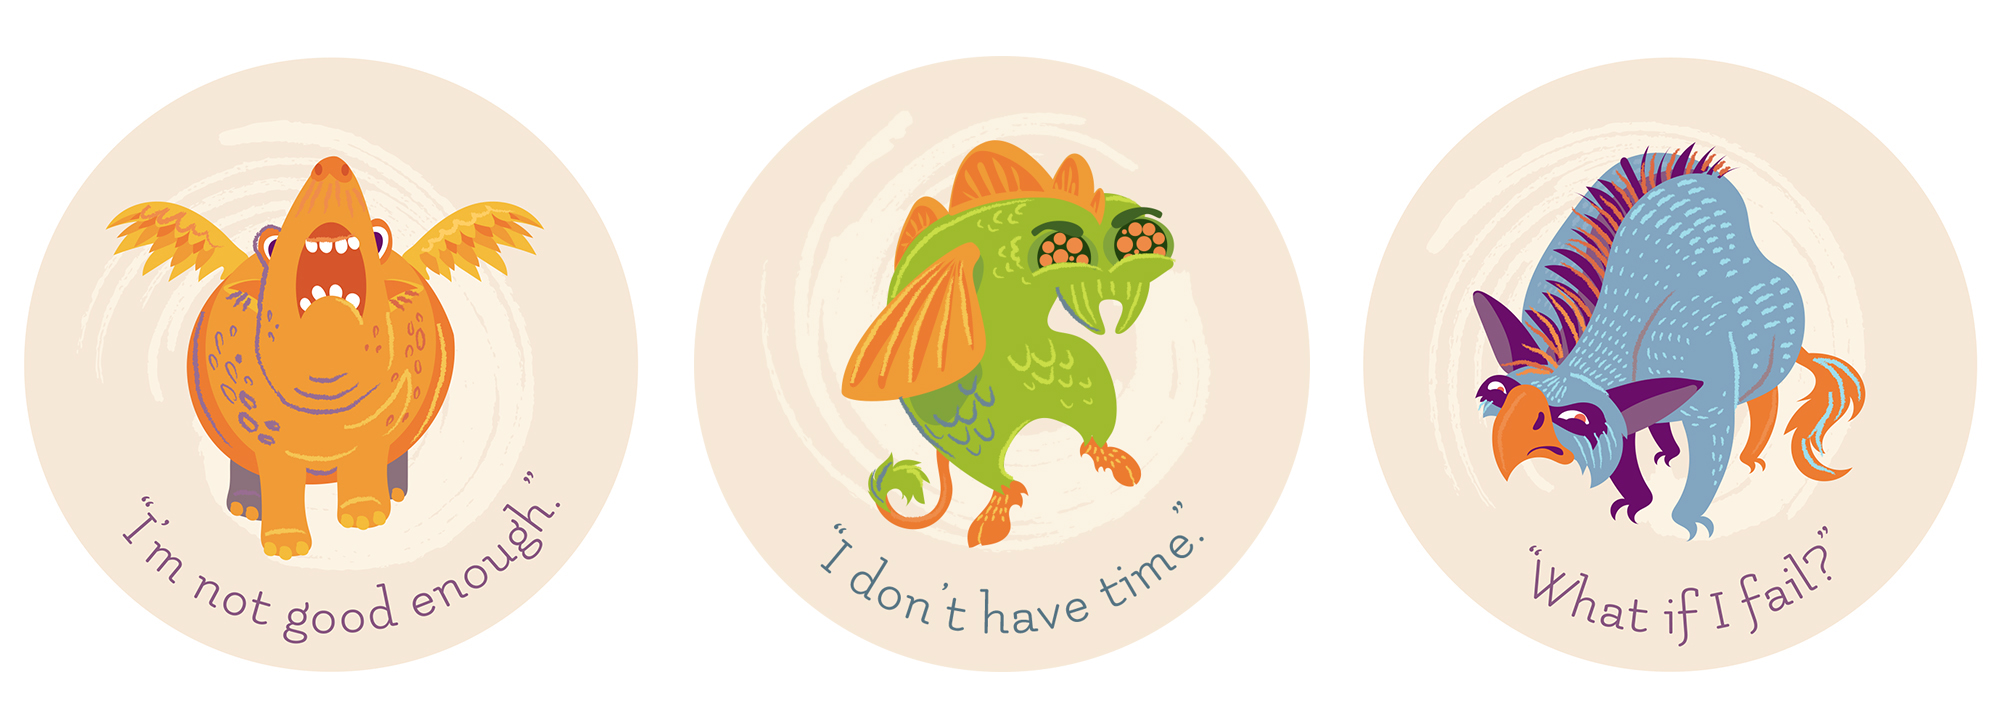 """""""Doubt Monsters"""" : A series of creature illustrations depicting some of the most common anxieties. Don't let them get you down!"""